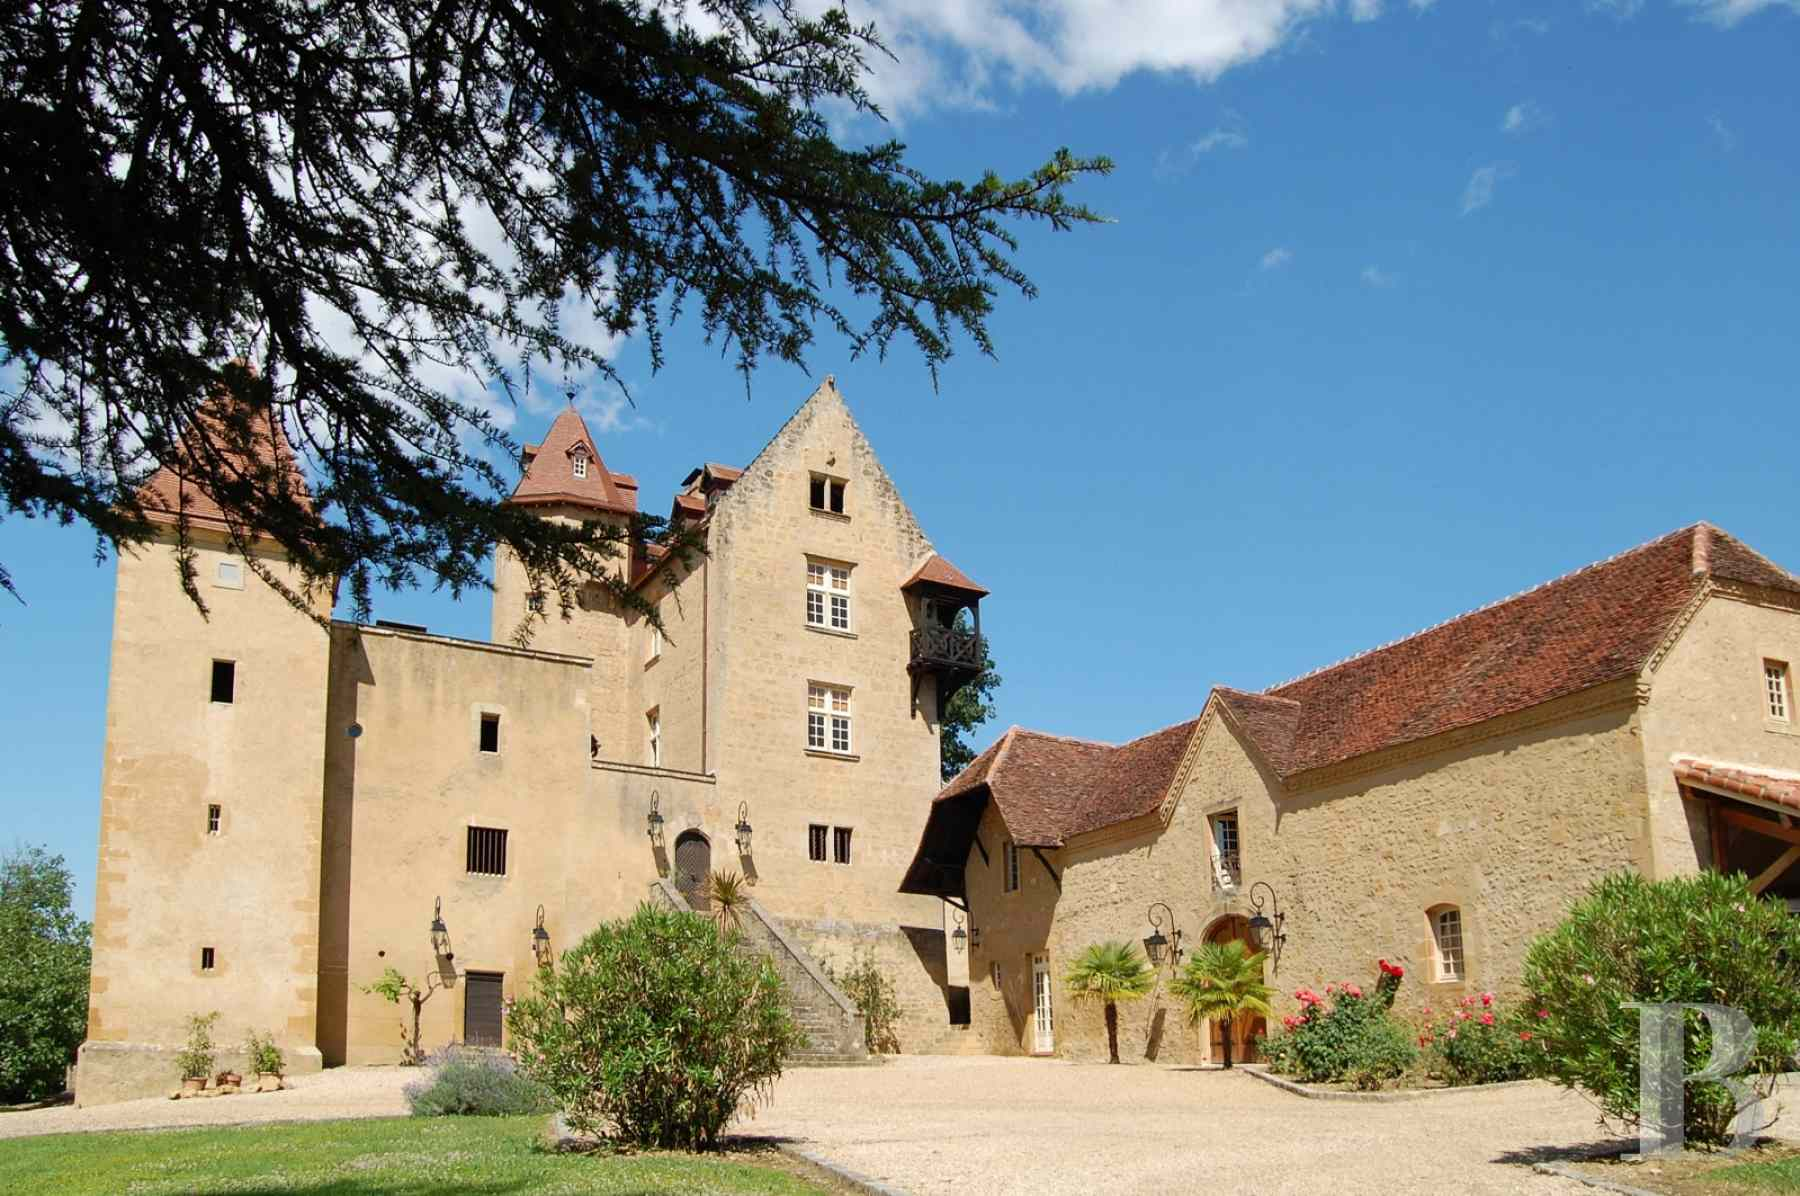 chateaux for sale France aquitaine bearn region - 2 zoom